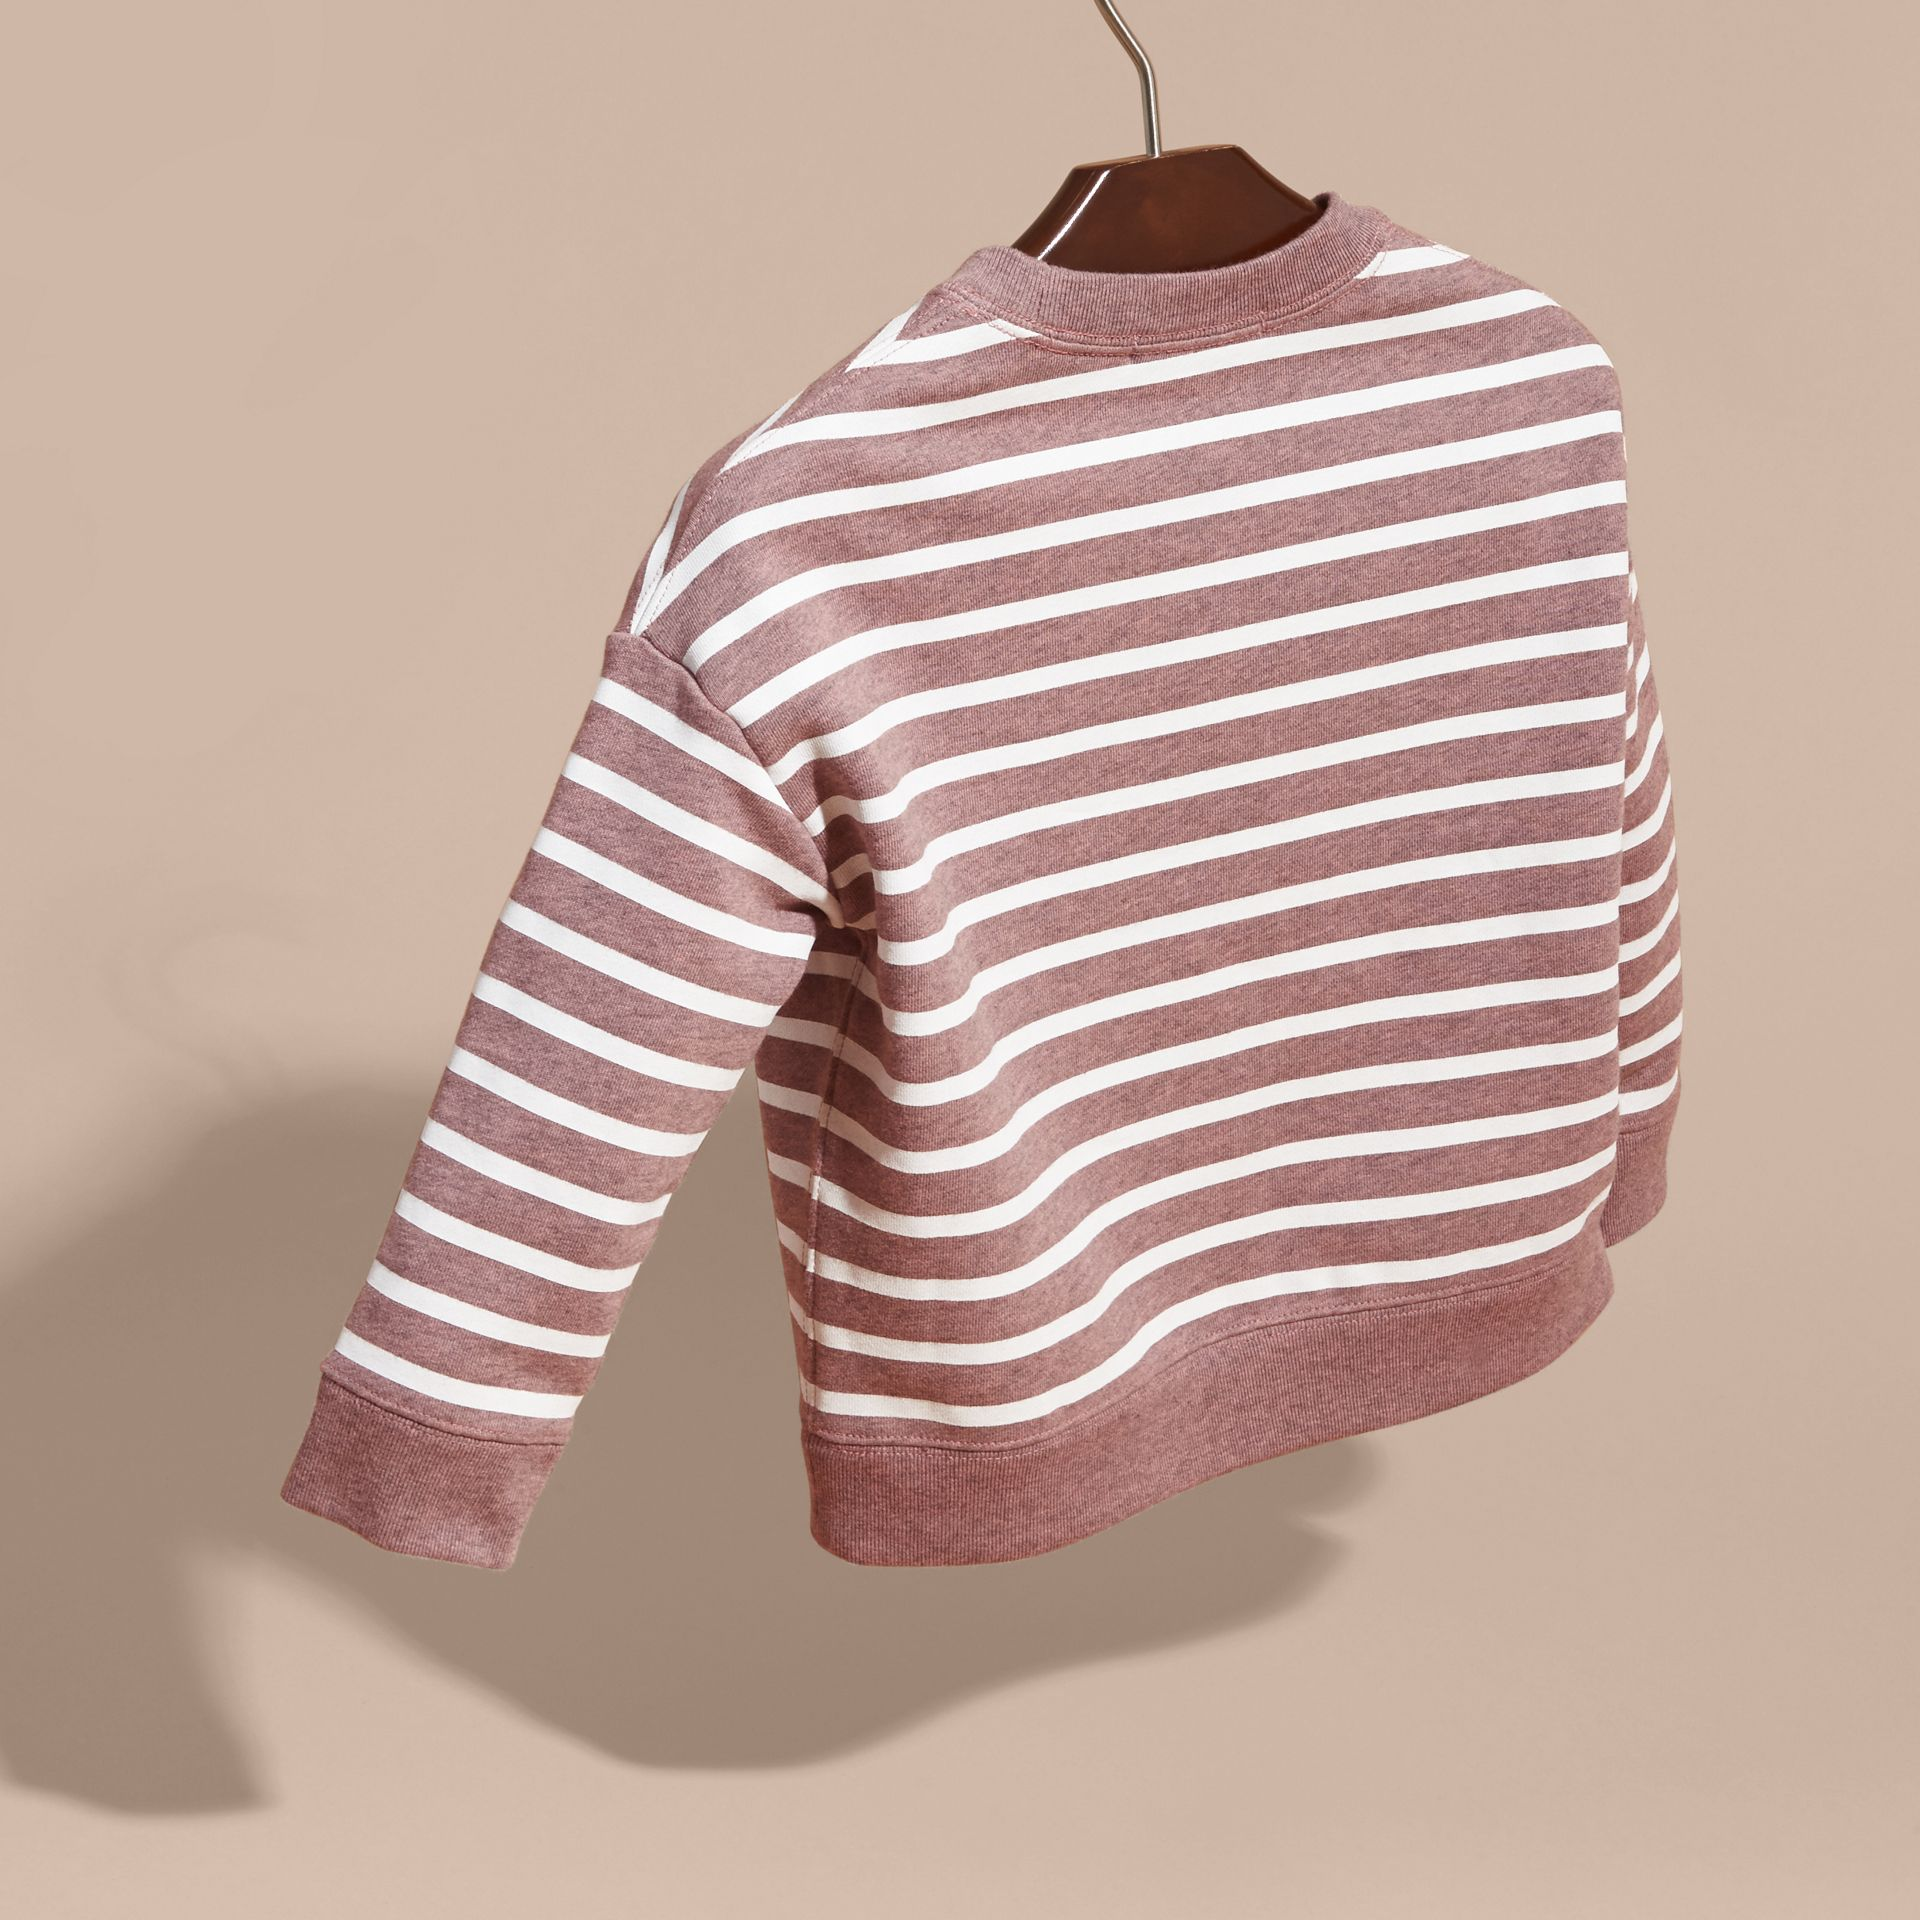 Striped Cotton Sweatshirt Pink Azalea Melange - gallery image 4